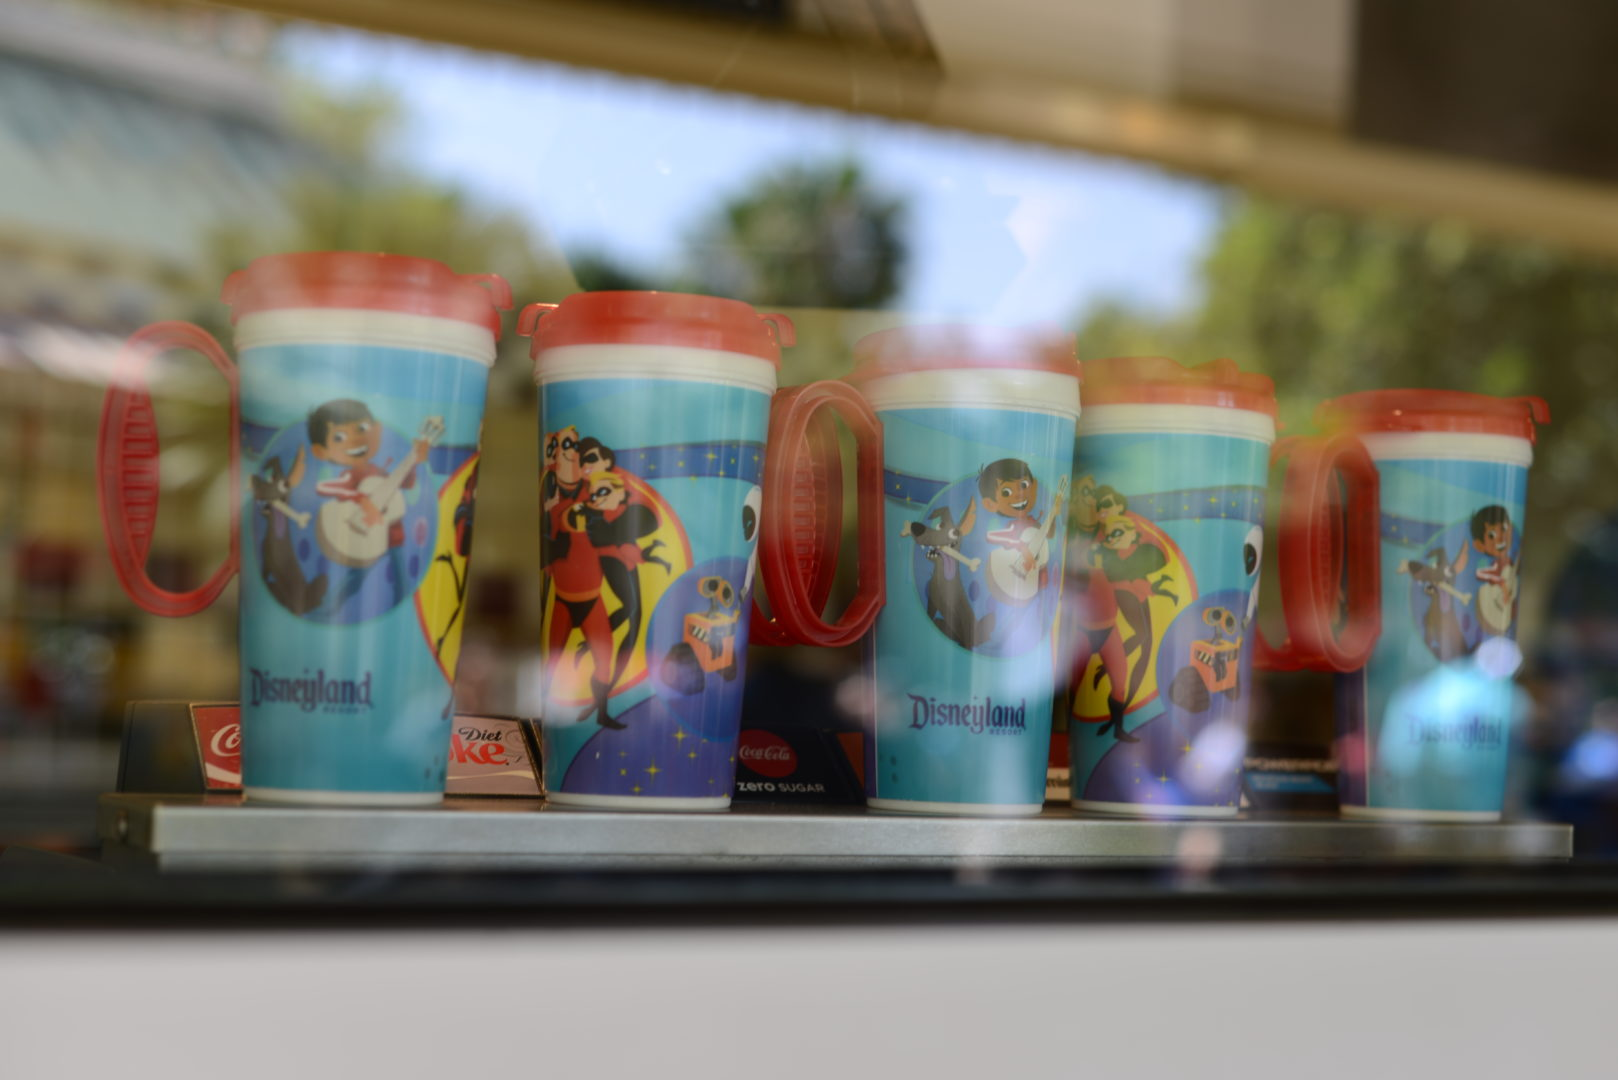 Souvenir Coco Refillable Plastic Cups for Disneyland's Pixar Fest